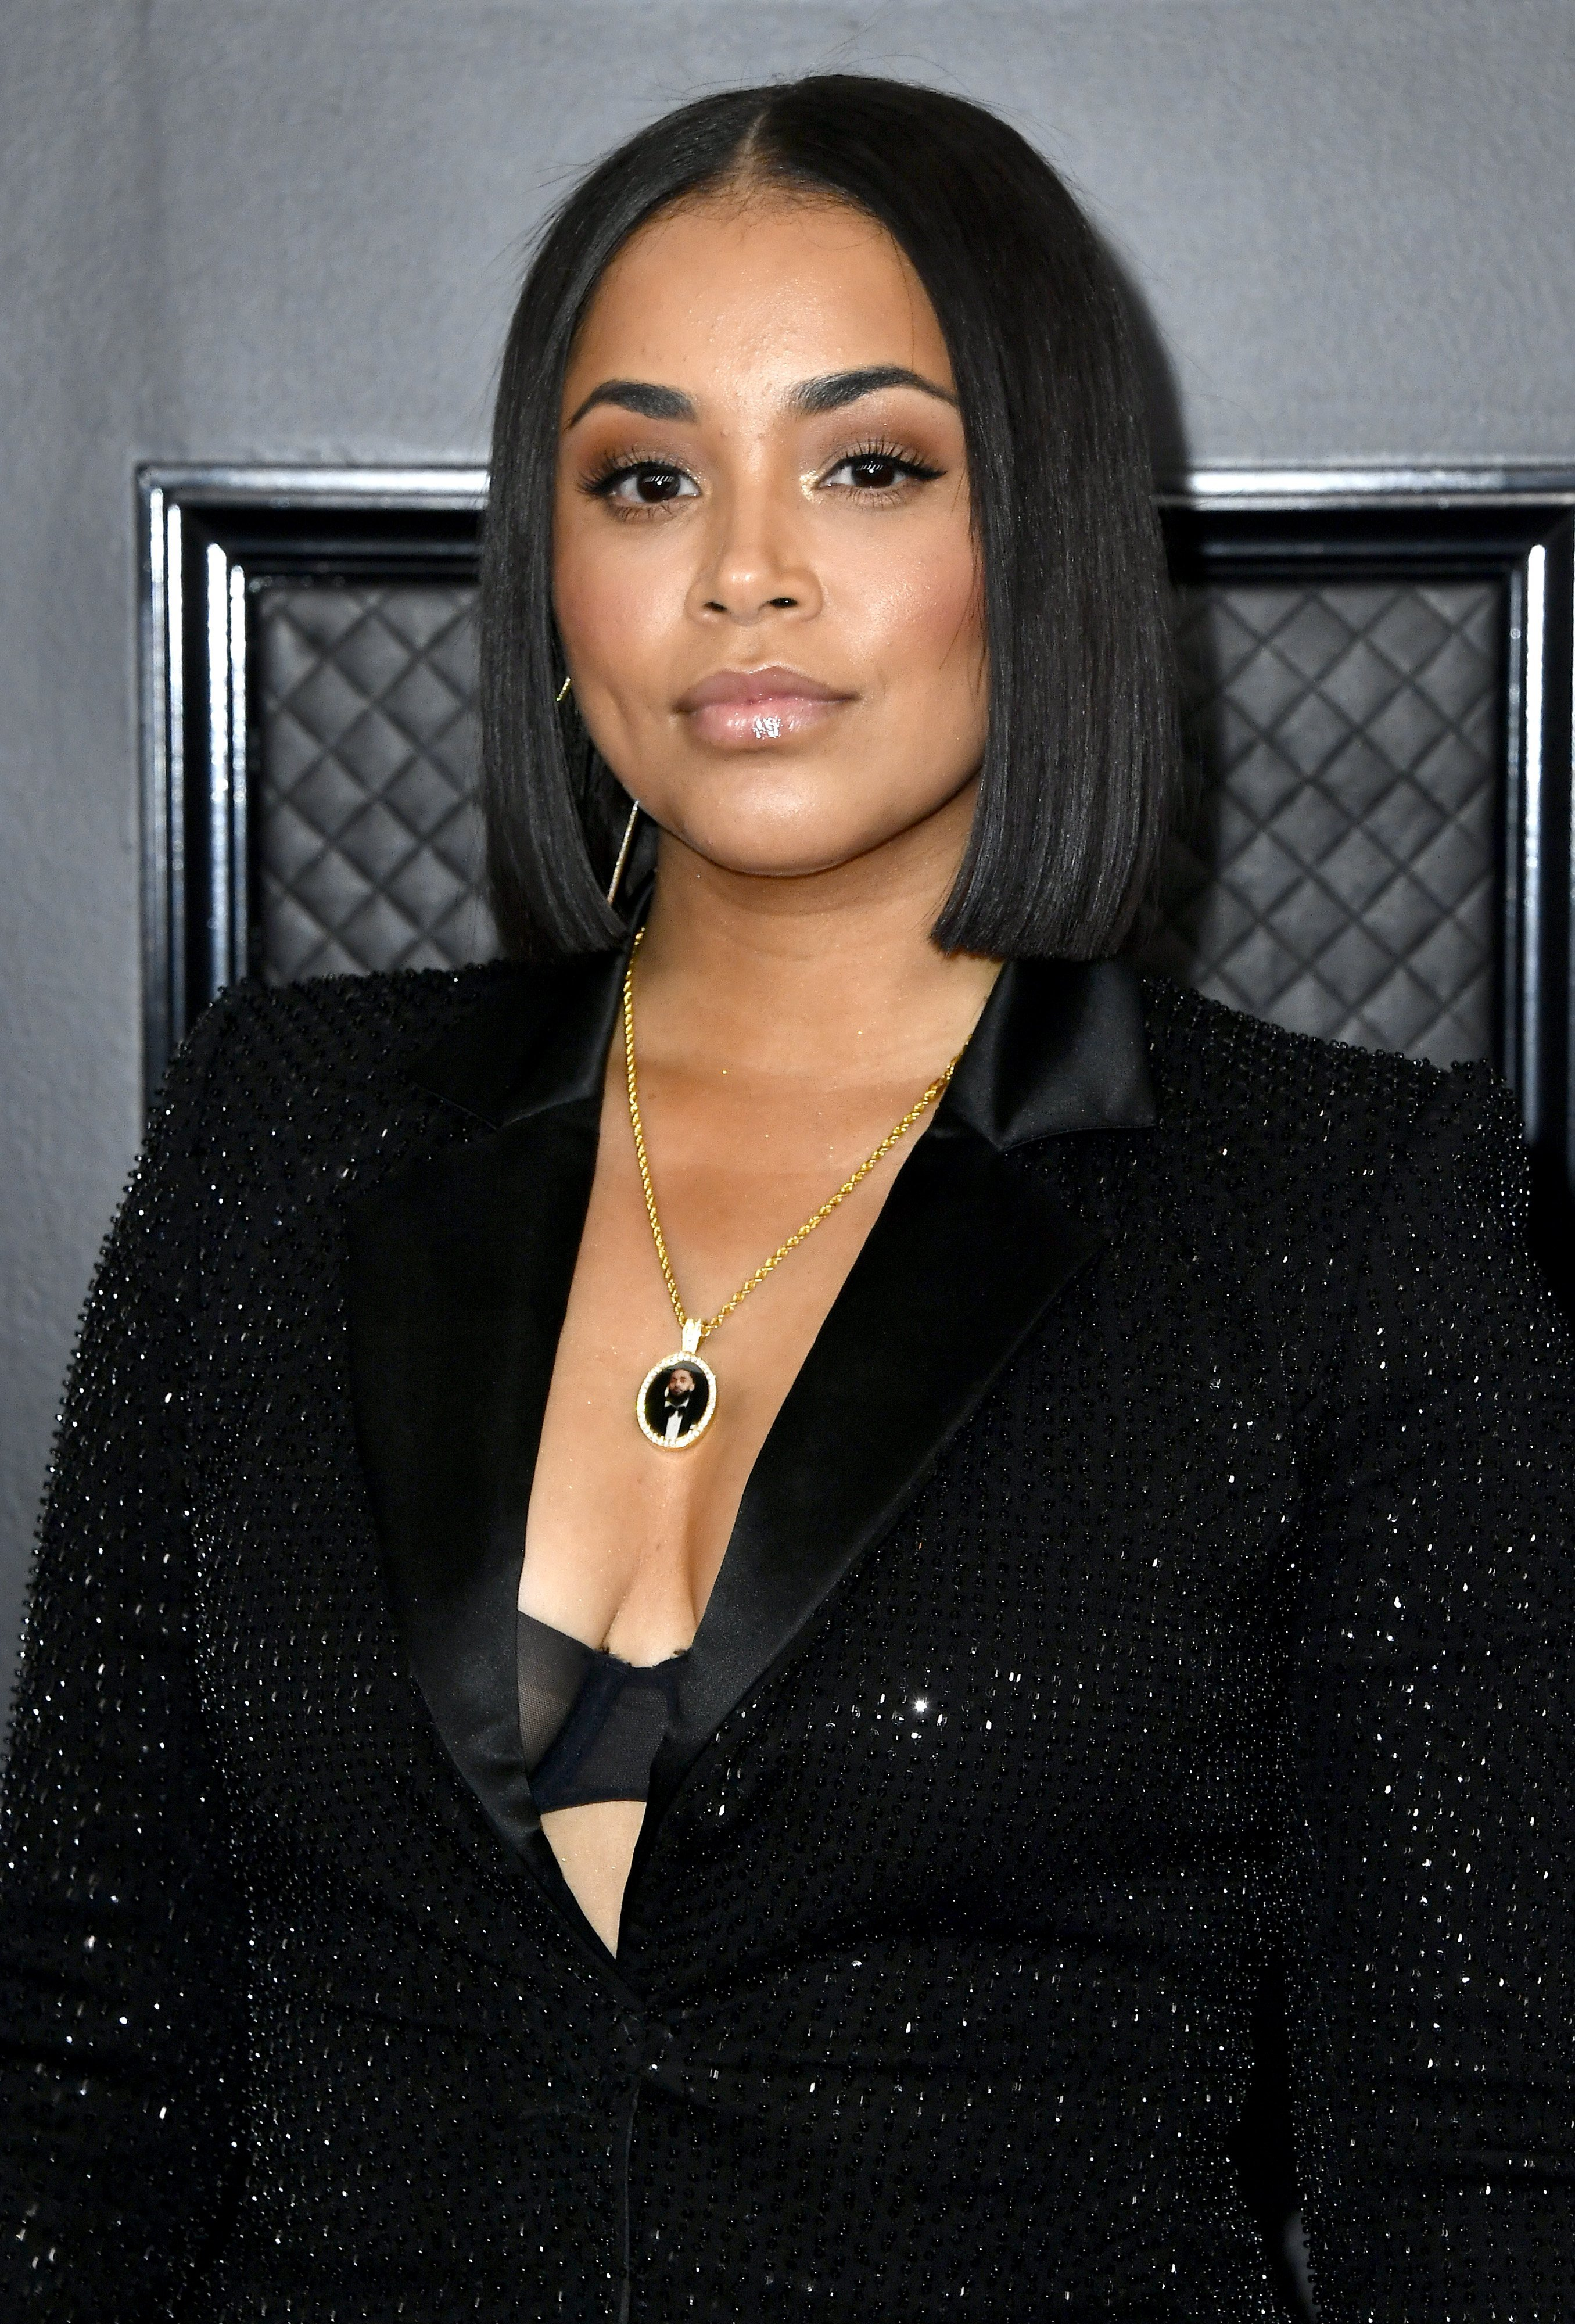 Lauren London attends the 62nd Annual GRAMMY Awards on Jan. 26, 2020 in California | Photo: Getty Images